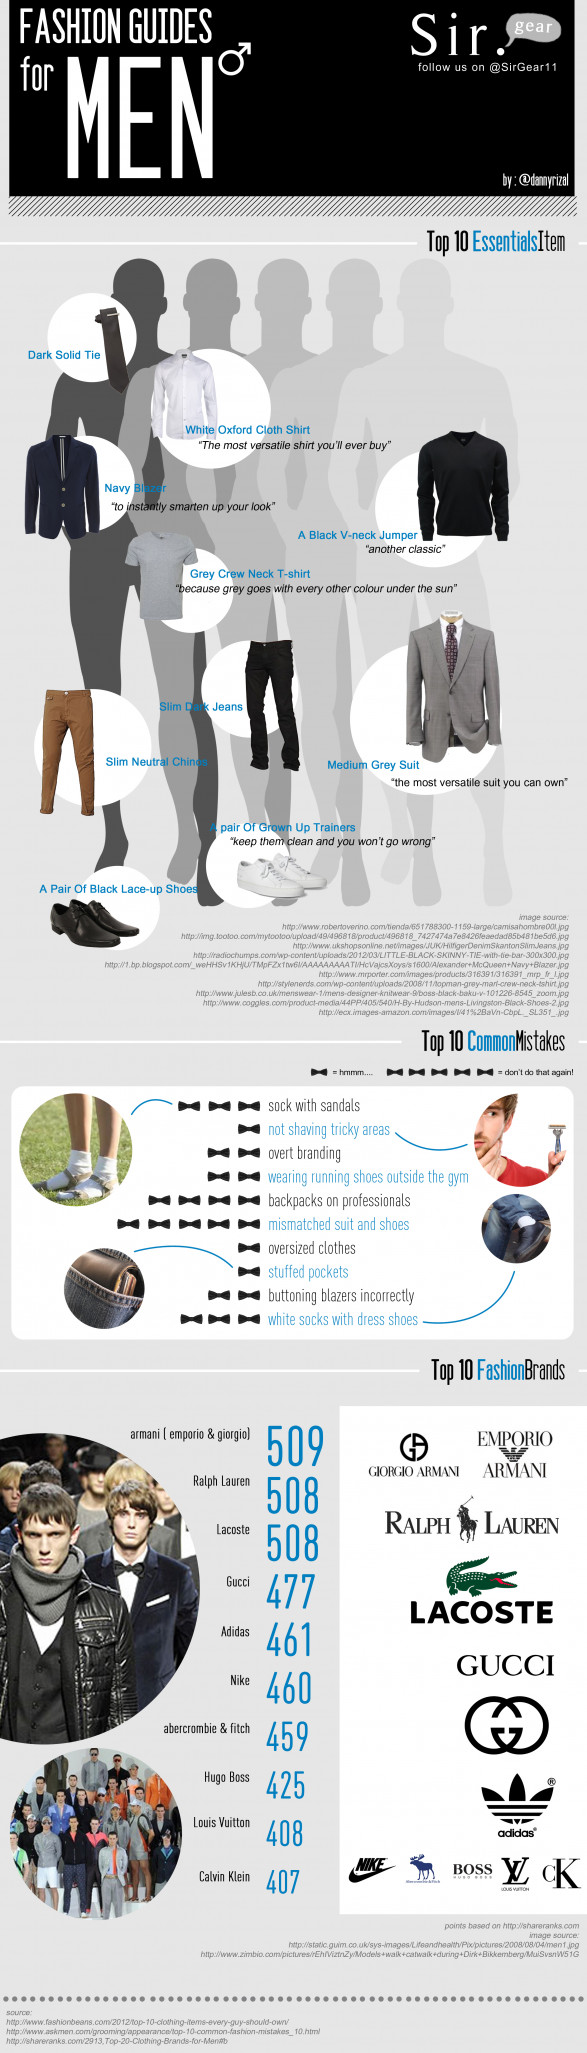 Fashion guides for men